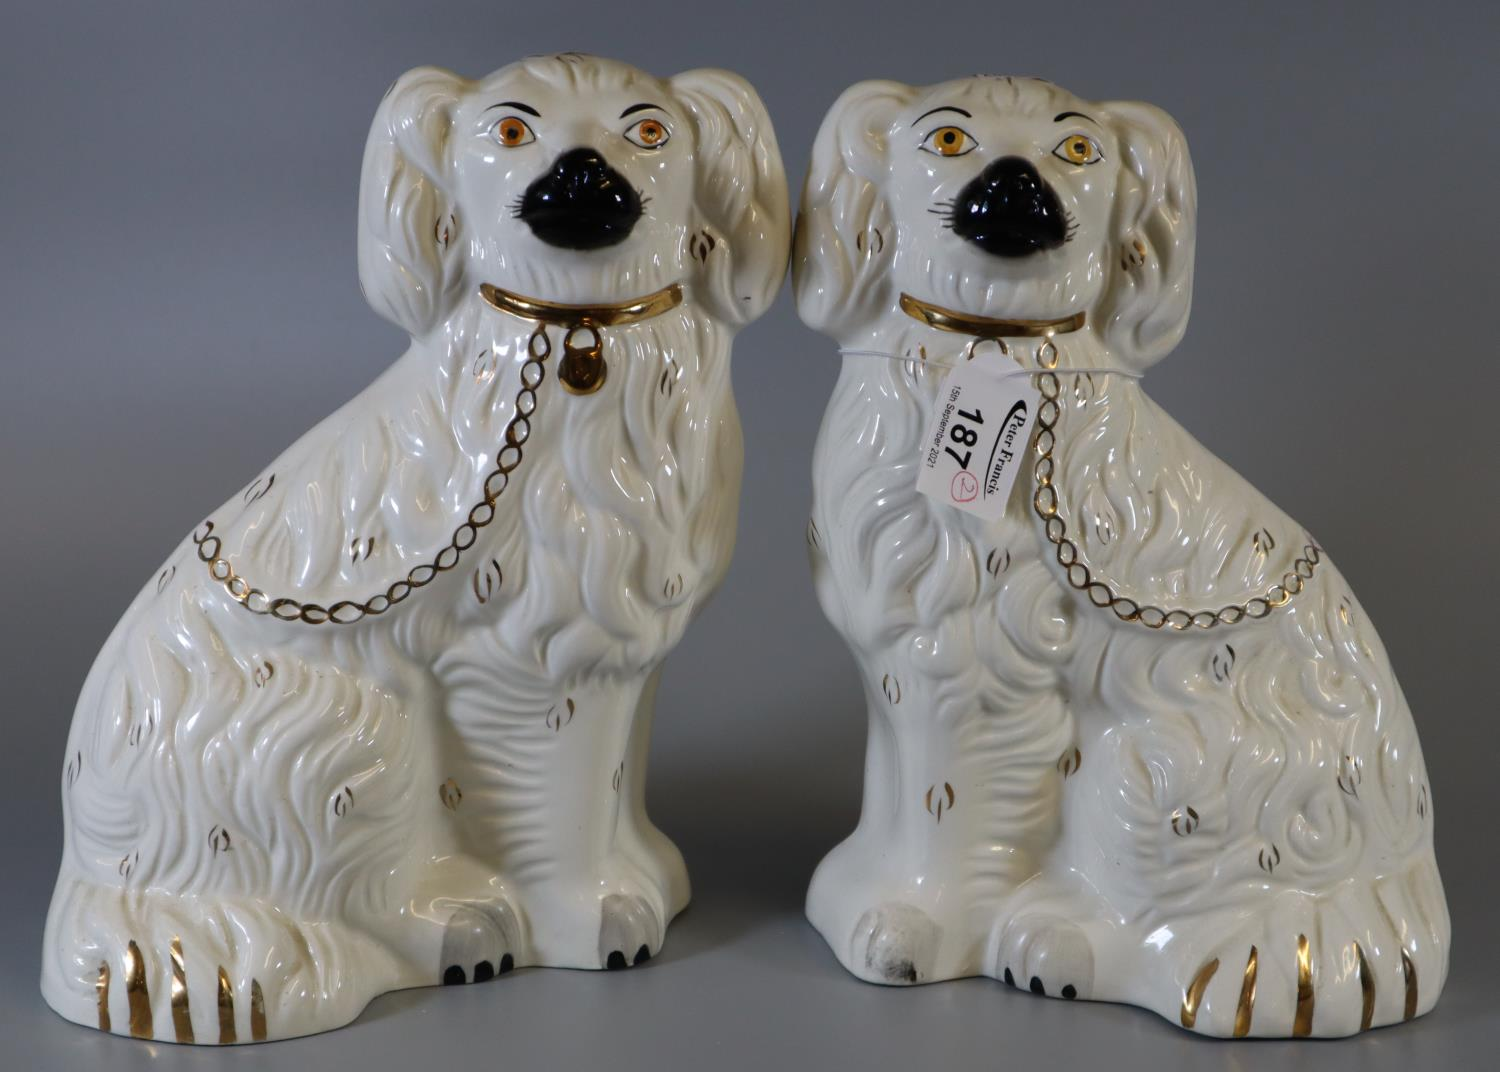 Pair of Beswick pottery fireside dogs with painted features. (B.P. 21% + VAT)